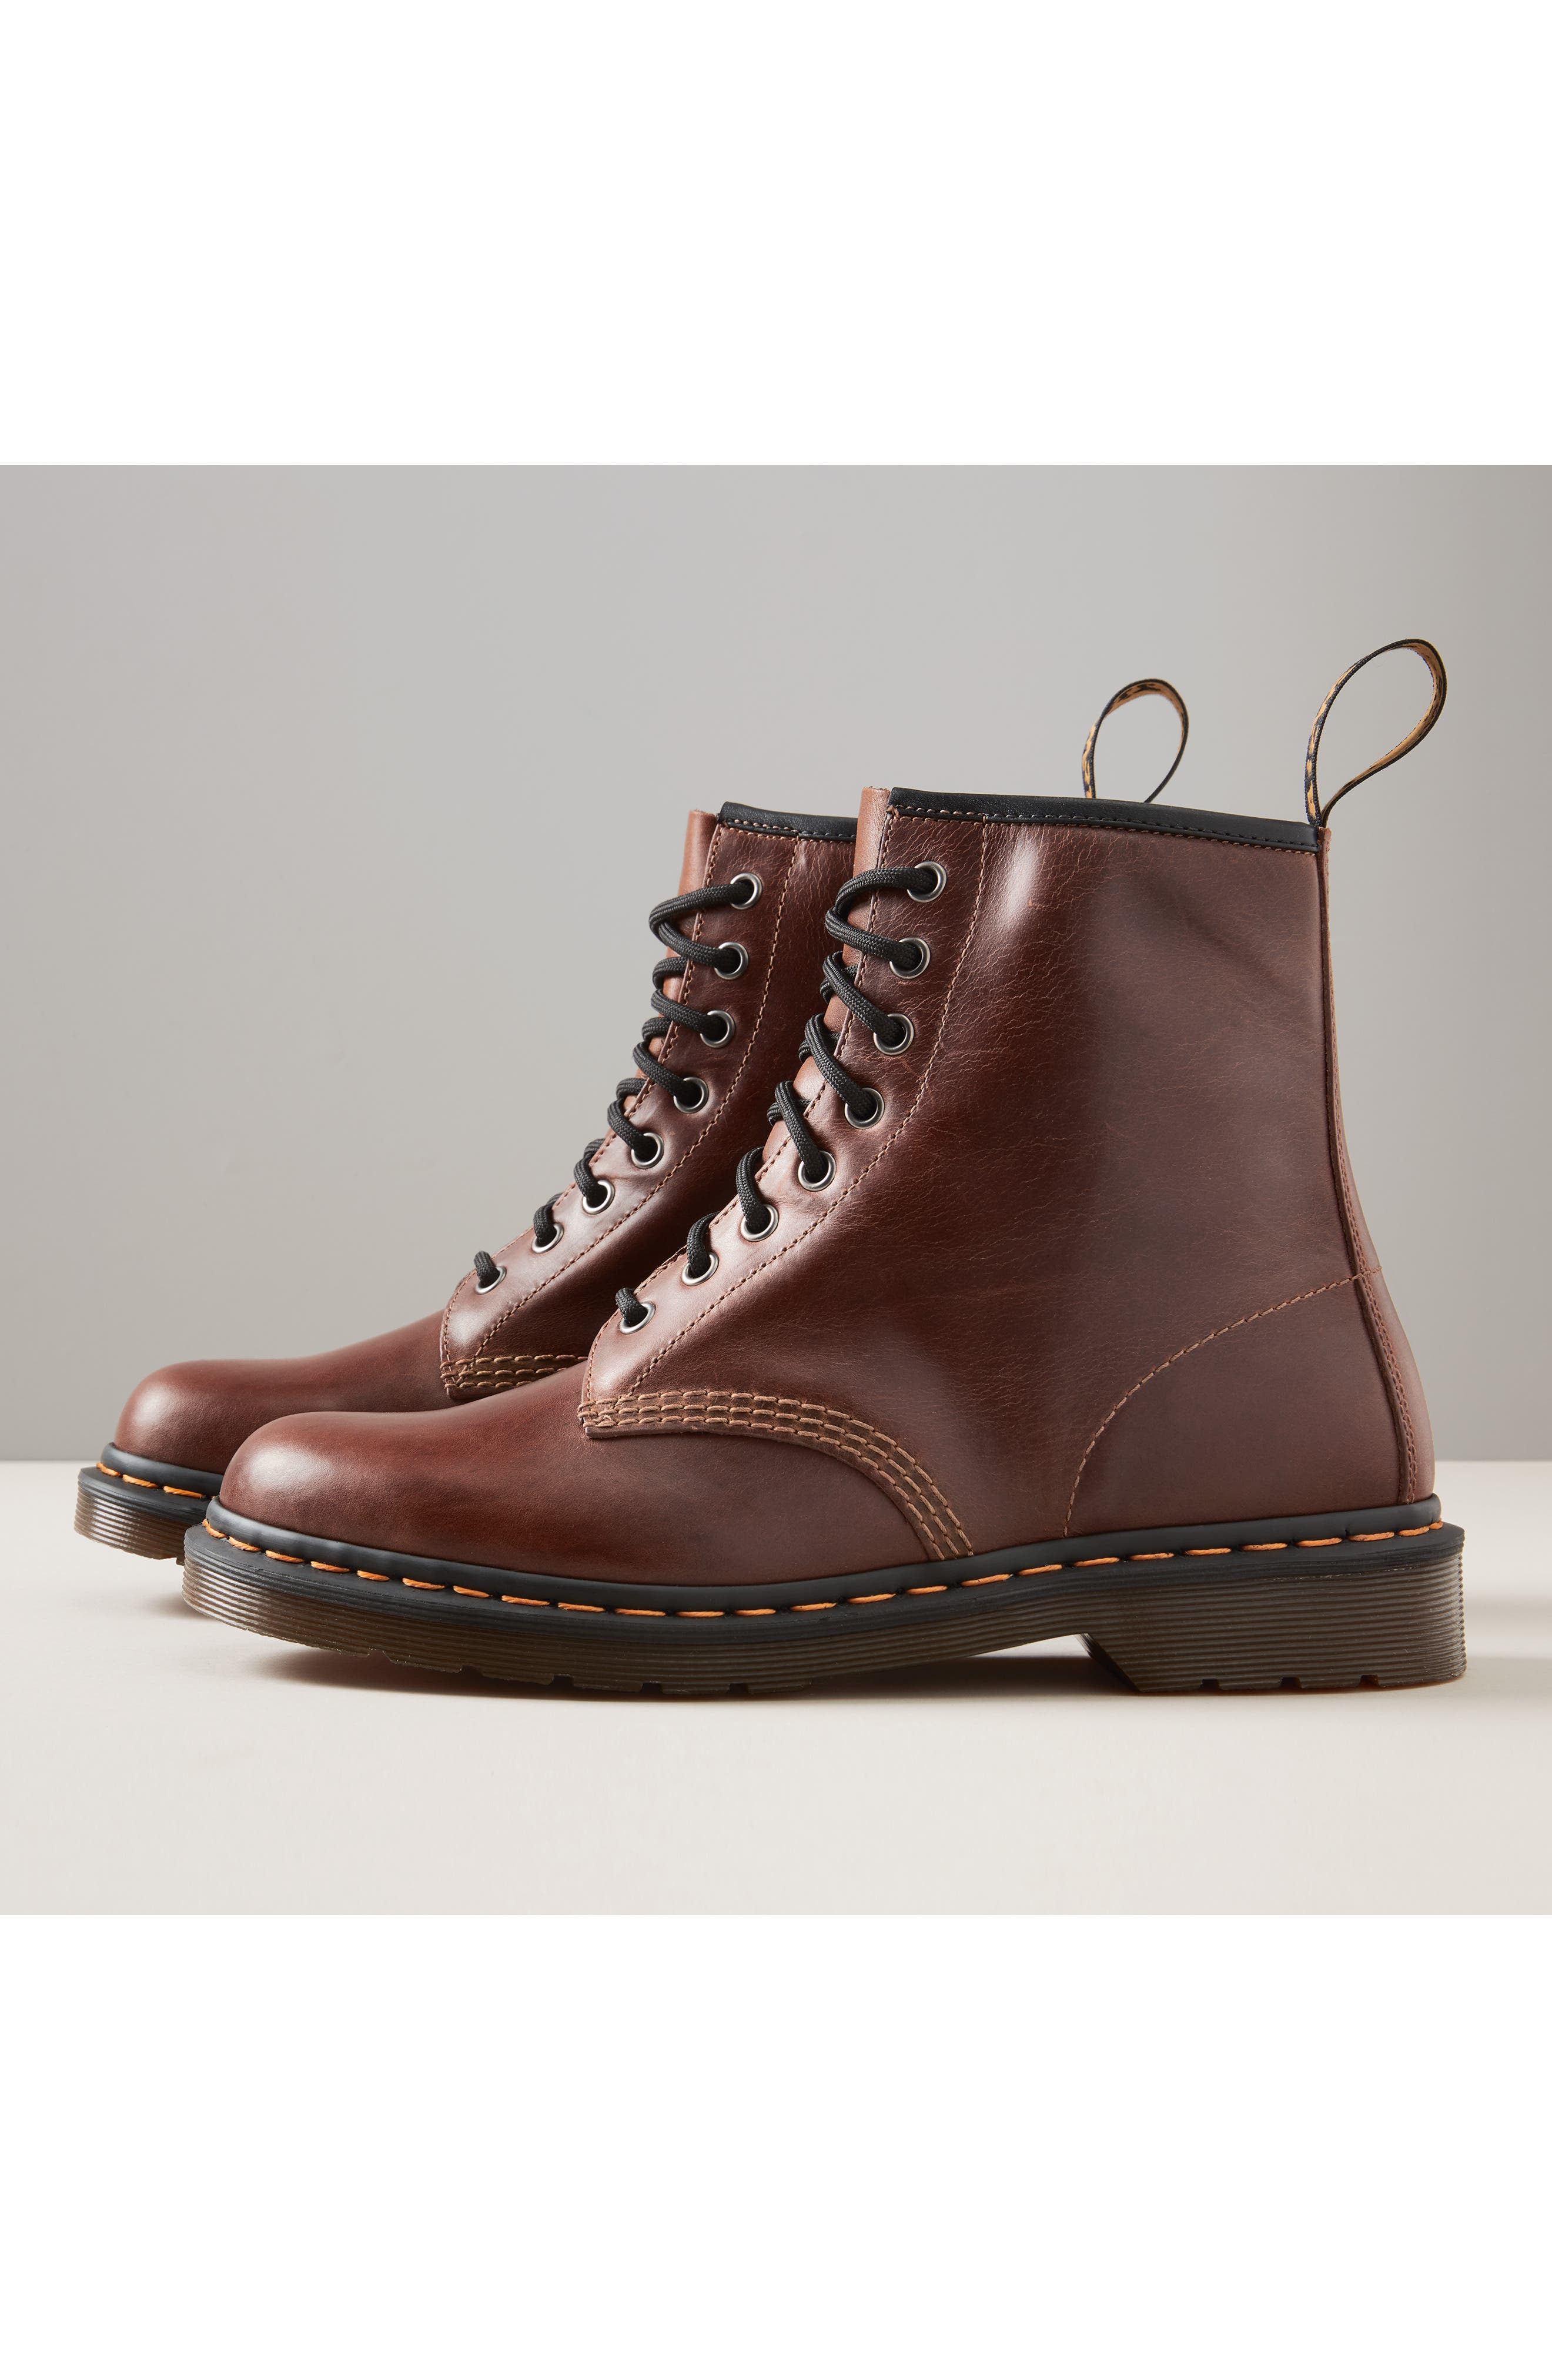 1460 8-Eye Boot,                         Main,                         color,